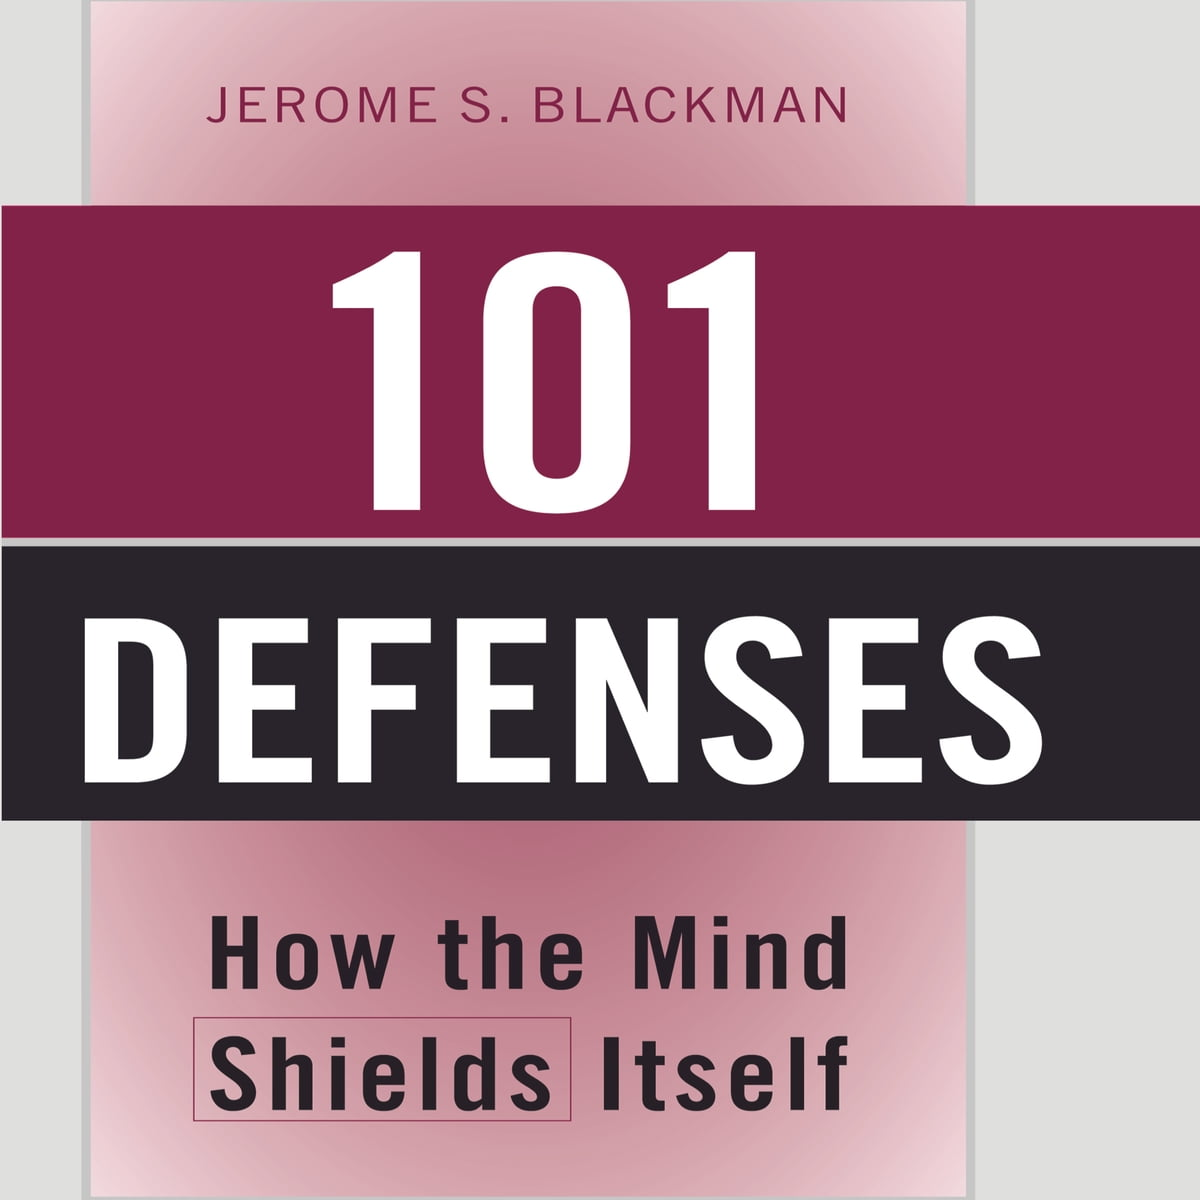 101 Defenses Audiobook by Jerome S. Blackman, M.D., F.A.P.A. -  9781469007571 | Rakuten Kobo